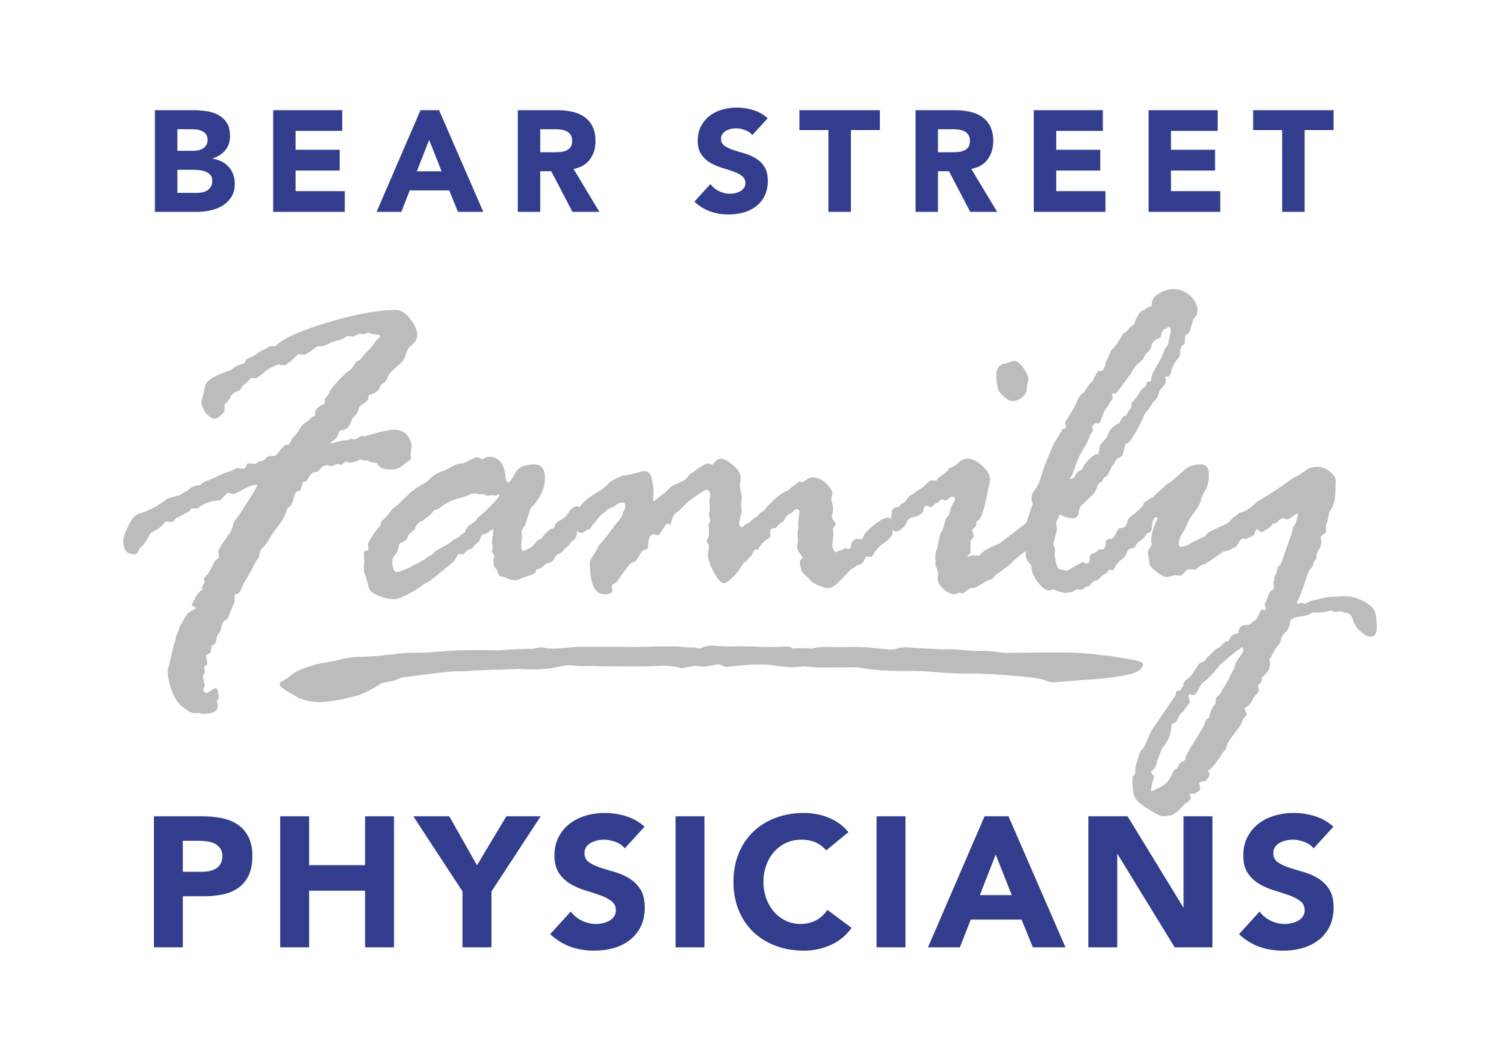 Bear Street Family Physicians